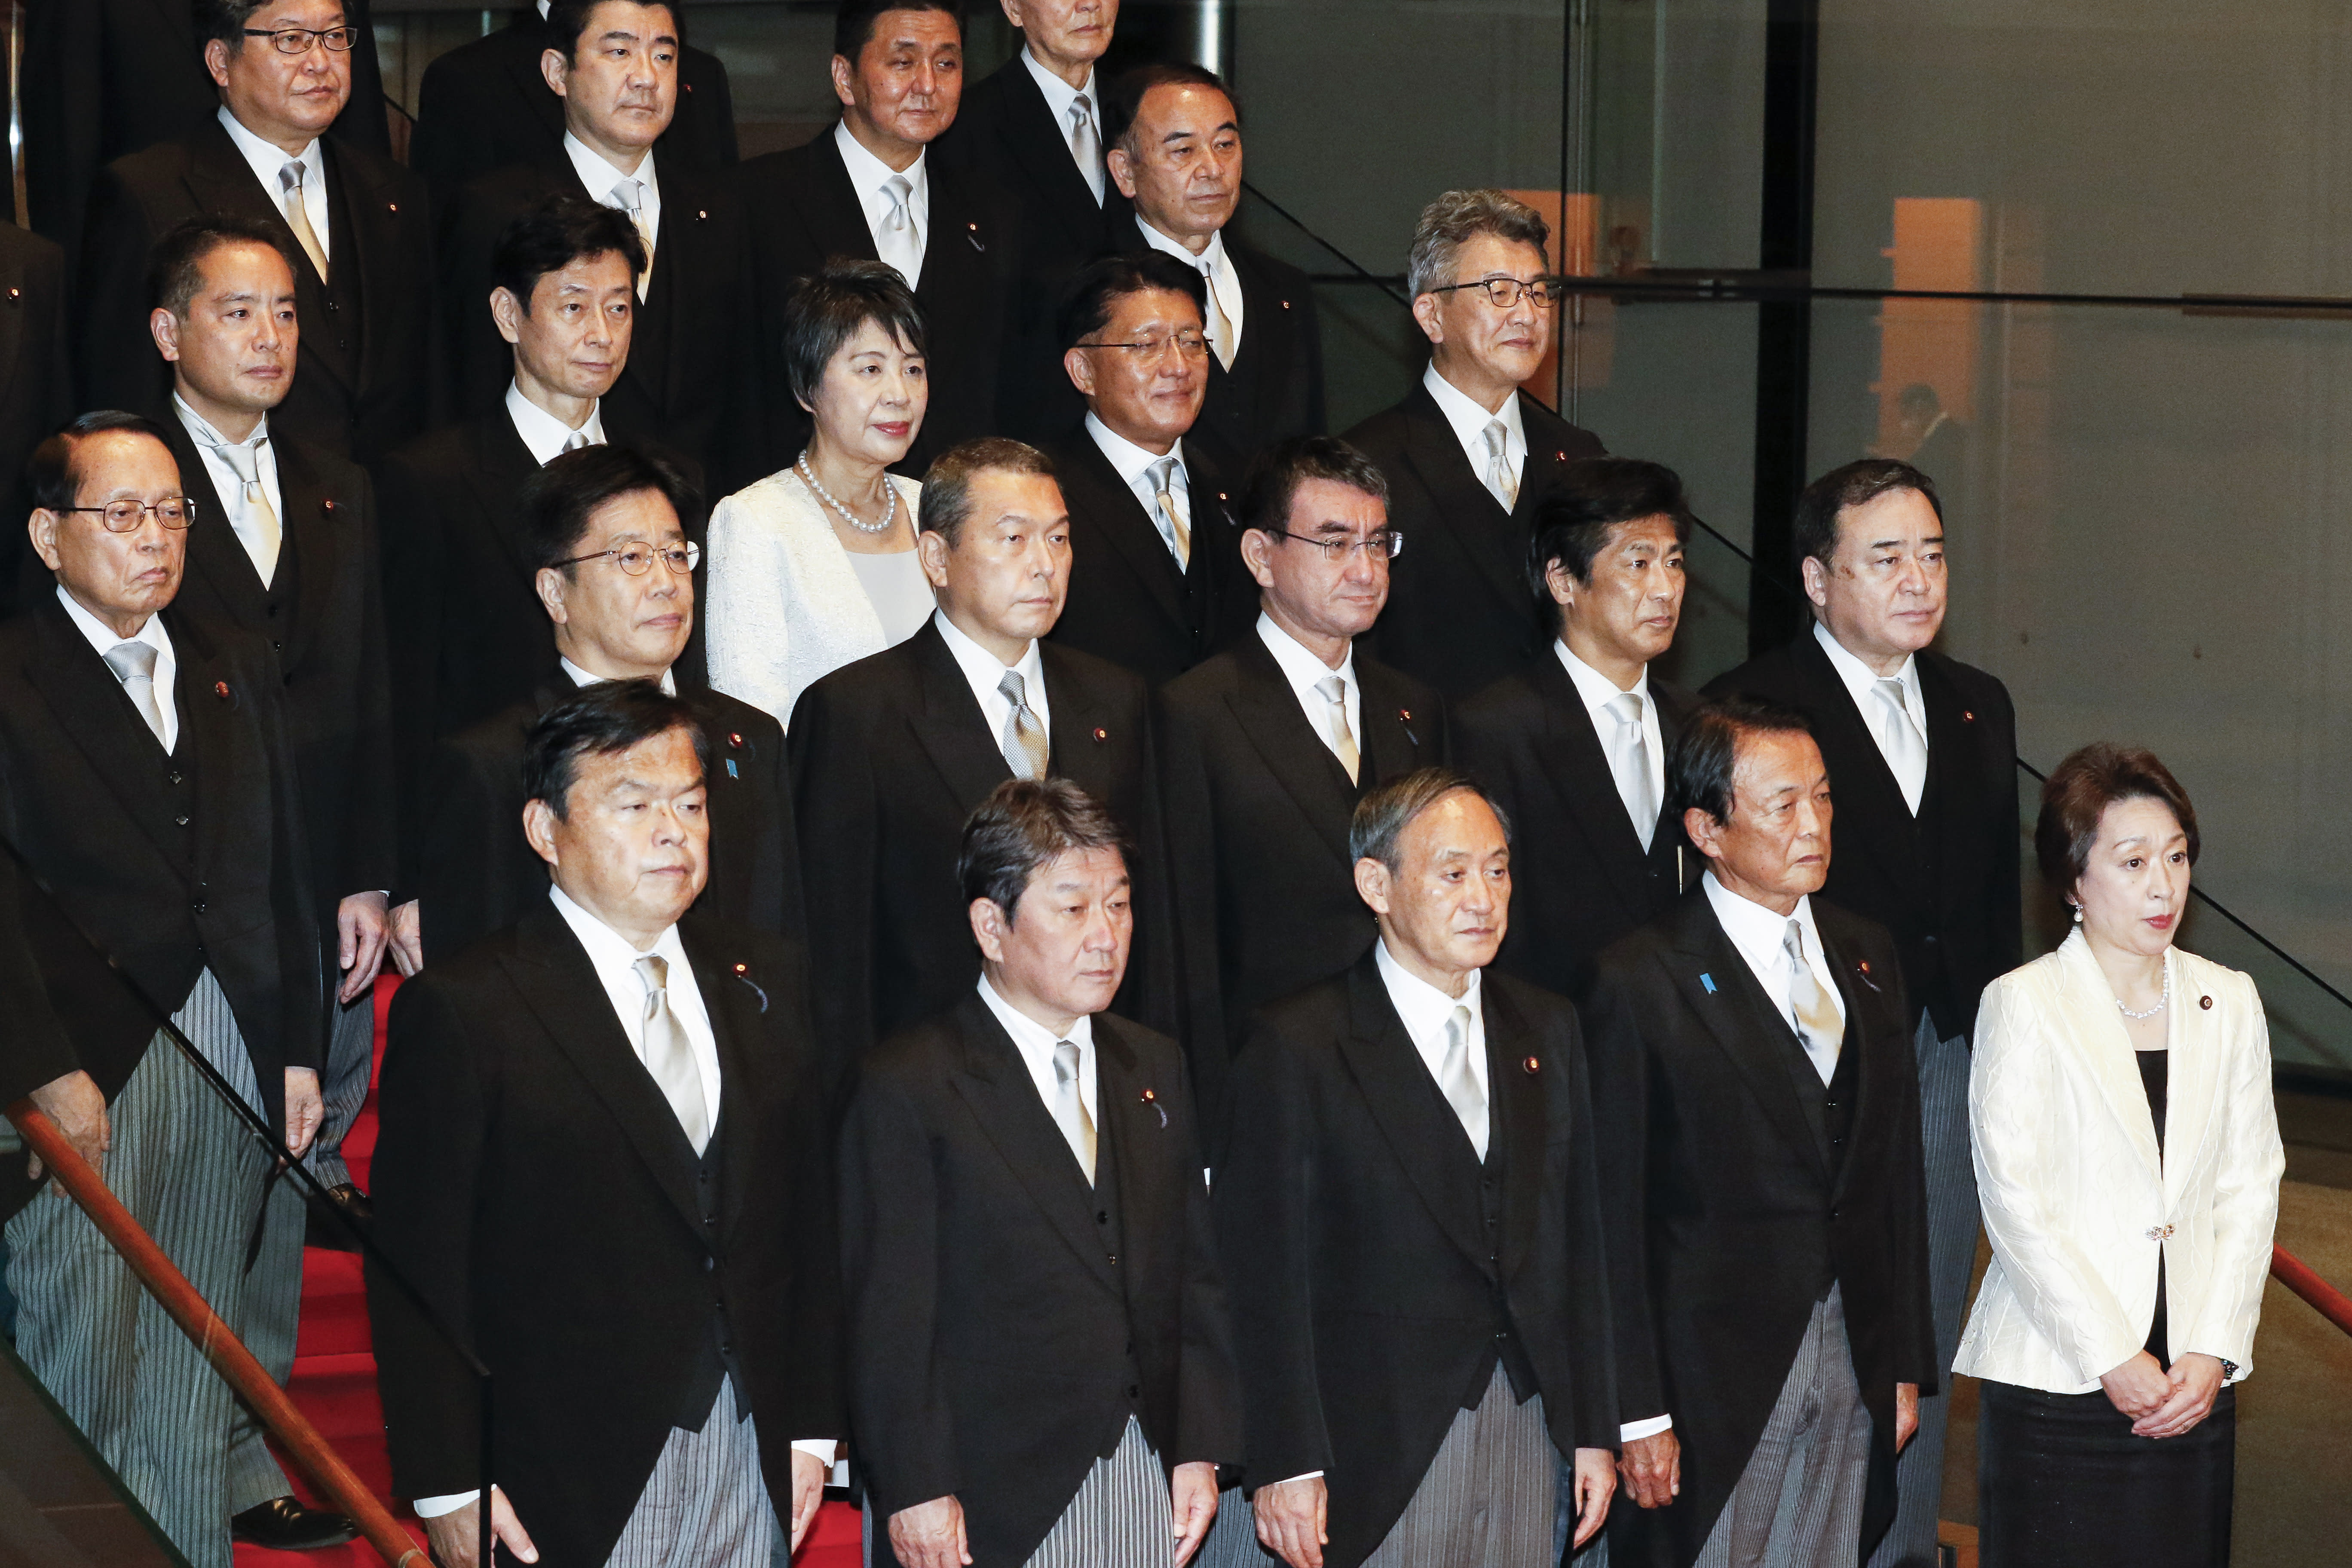 Japan's new Prime Minister Yoshihide Suga, center in front row, poses for a group photo with his cabinet members following the first Cabinet meeting at the prime minister's official residence in Tokyo Wednesday, Sept. 16, 2020. Japan's Parliament elected Yoshihide Suga as prime minister Wednesday, replacing long-serving leader Shinzo Abe with his right-hand man.(Rodrigo Reyes Marin/Pool Photo via AP)